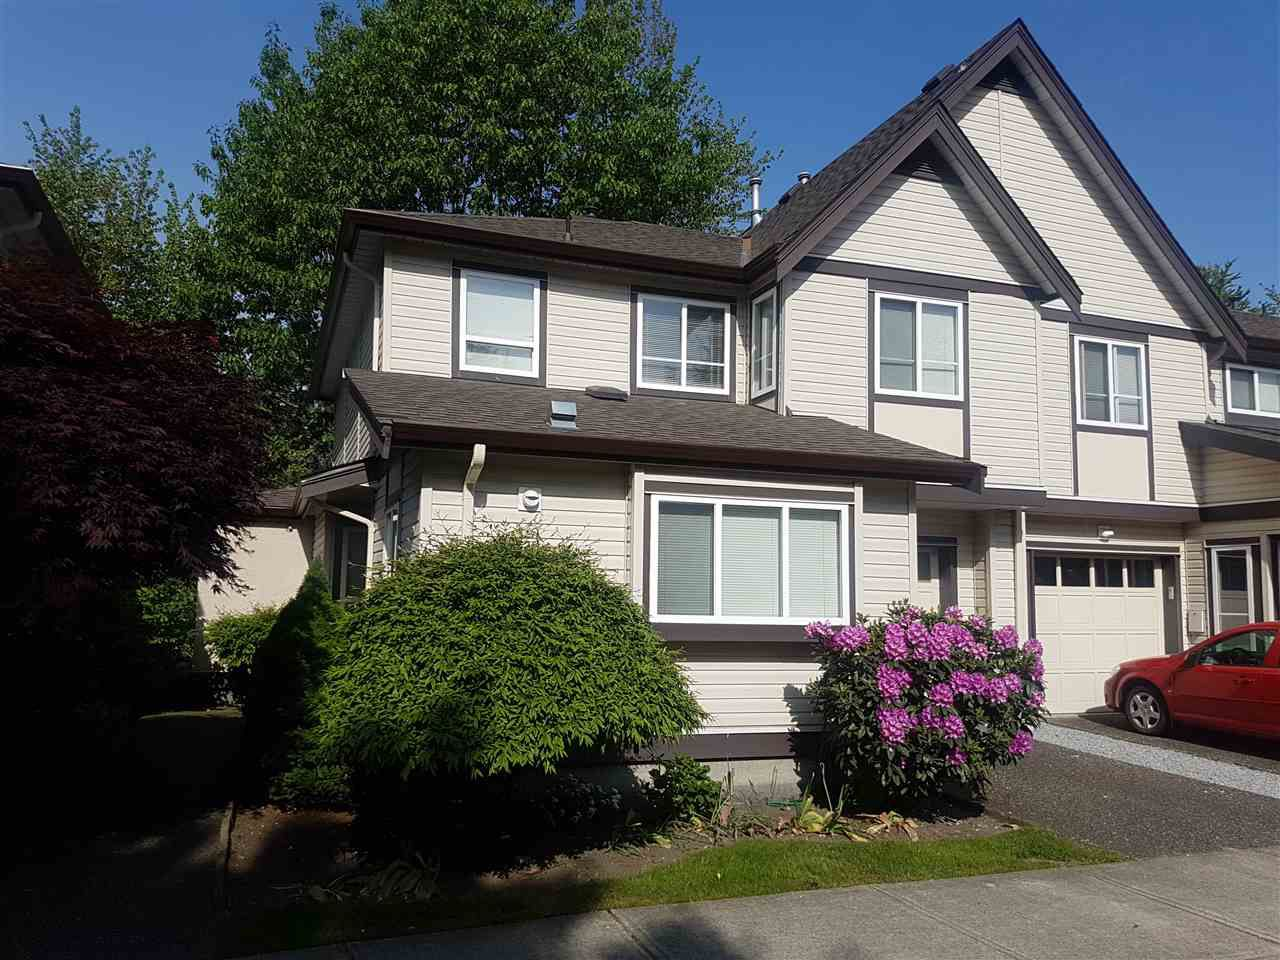 """Main Photo: 41 21801 DEWDNEY TRUNK Road in Maple Ridge: West Central Townhouse for sale in """"SHERWOOD PARK"""" : MLS®# R2369478"""